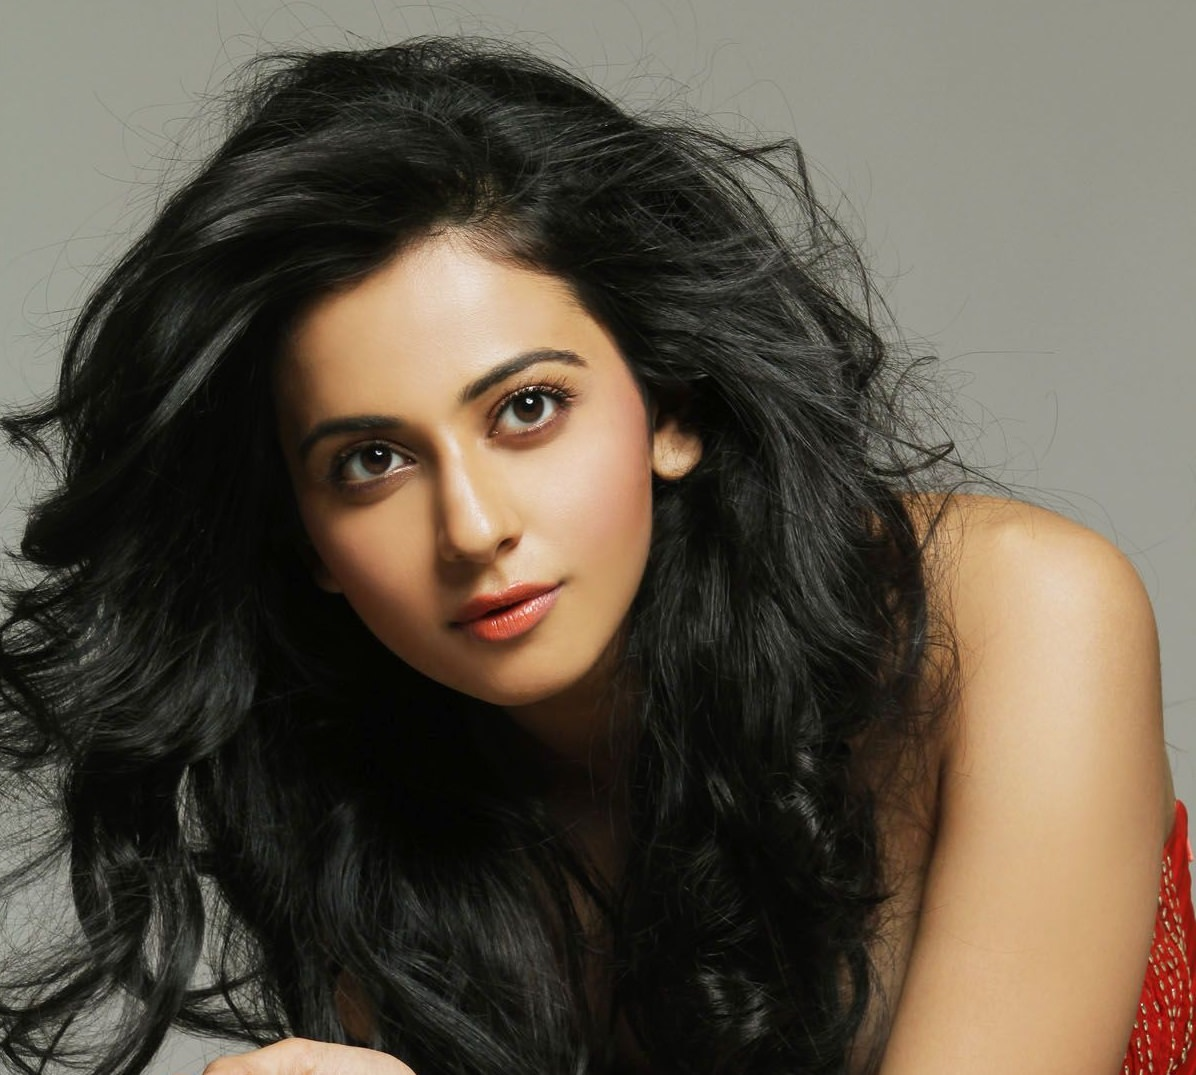 Hd wallpaper yaariyan - Rakul Preet Singh Hd W